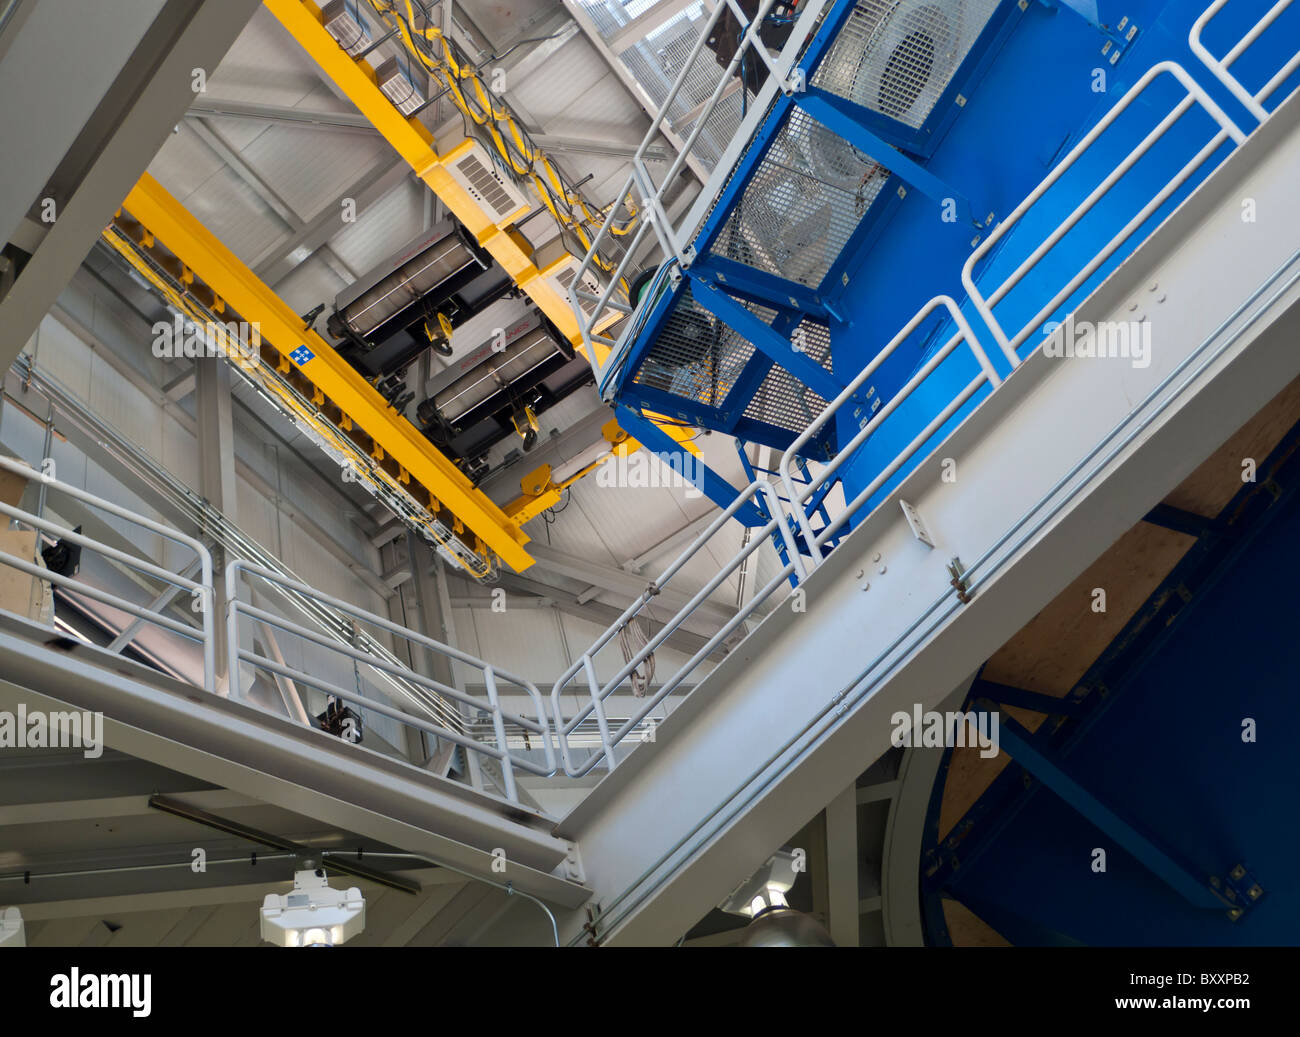 Yellow mirror crane of the Discover Channel Telescope near Flagstaff, Arizona - Stock Image